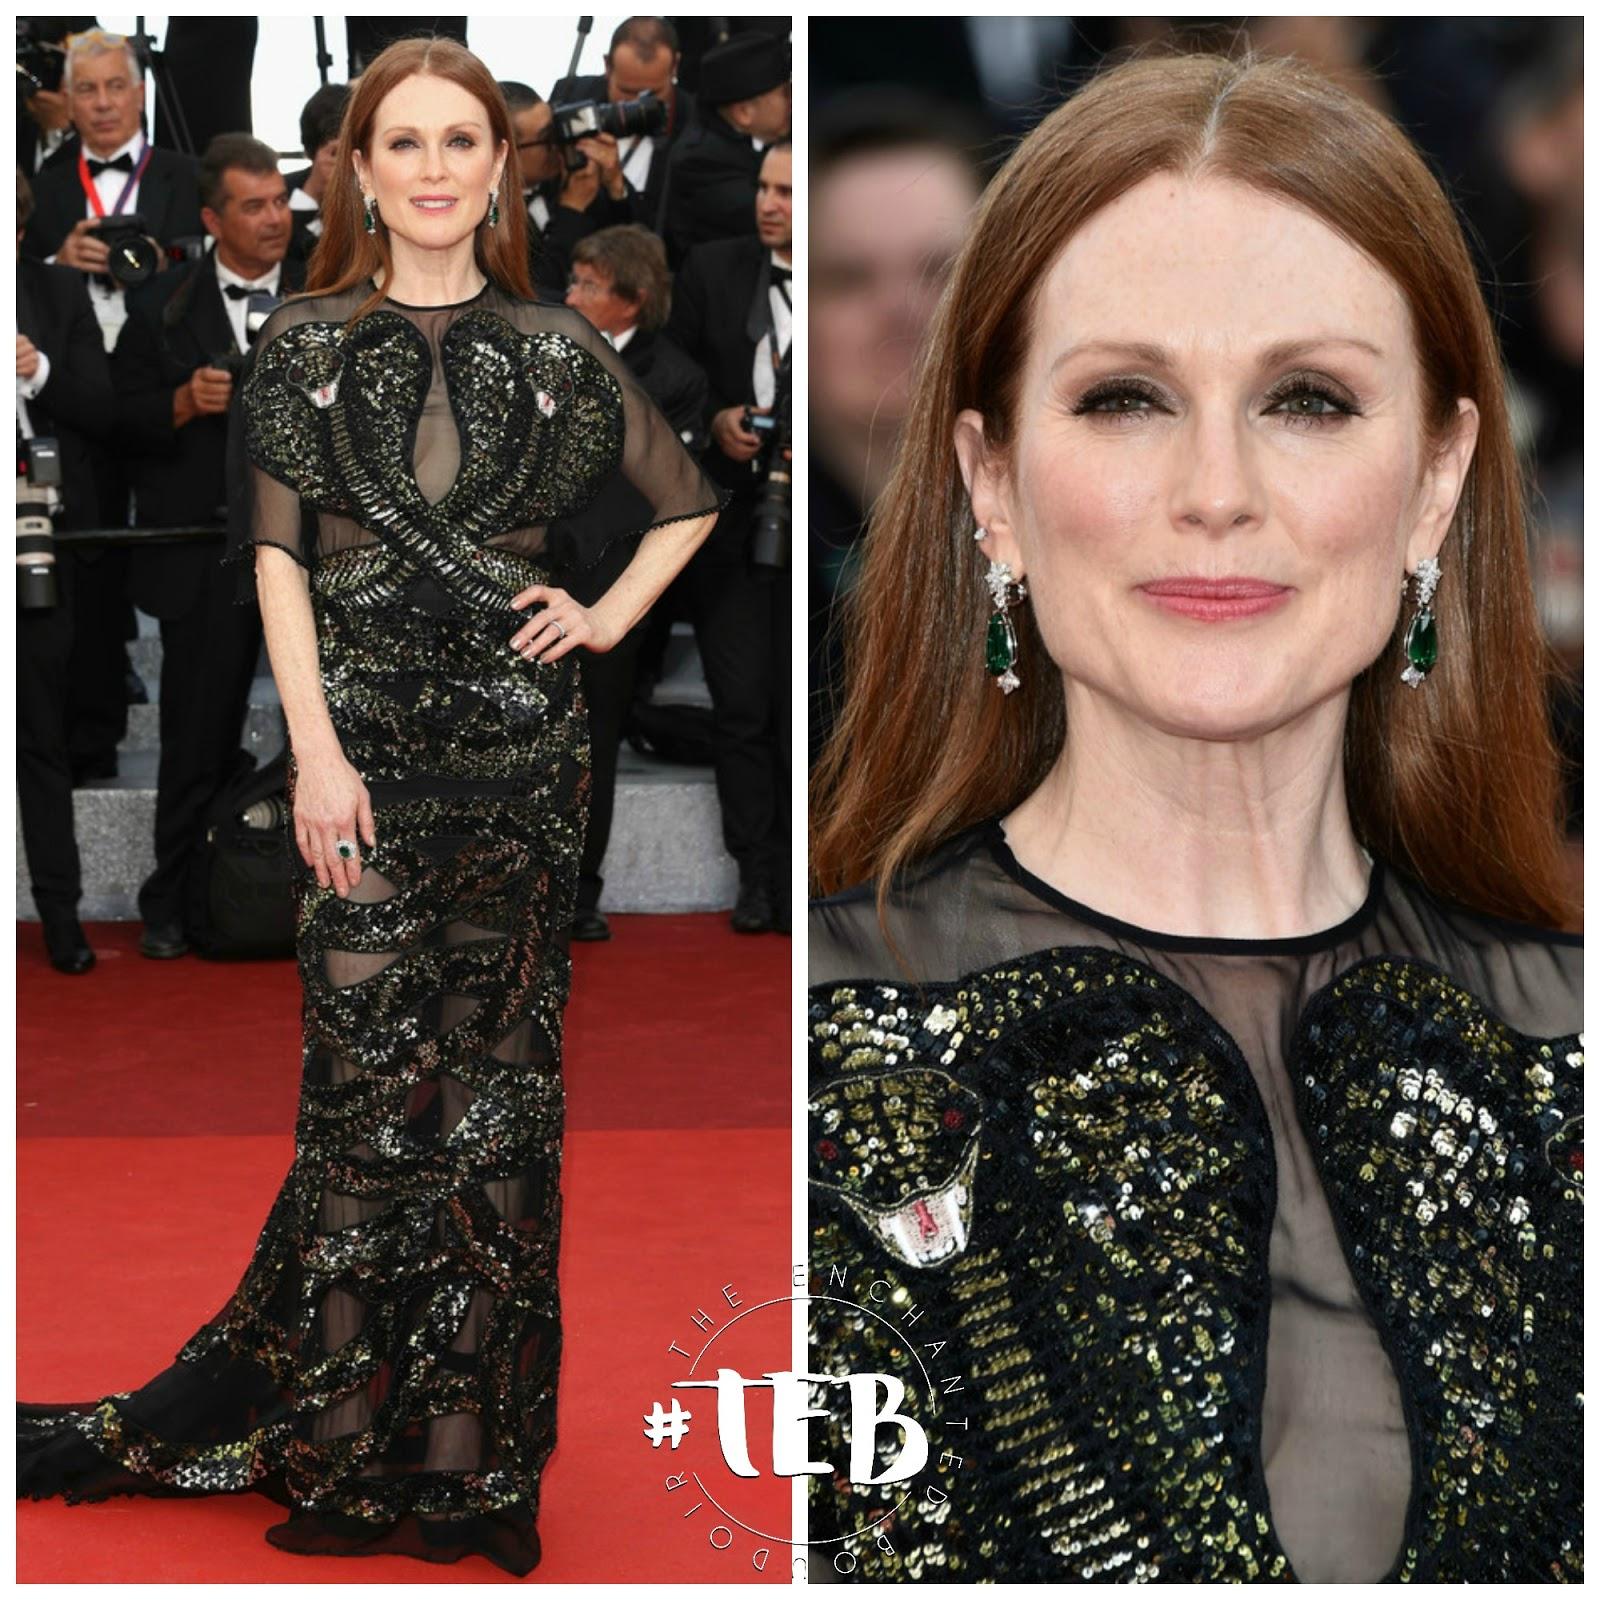 Julianne_Moore_Cannes_2016_Givenchy